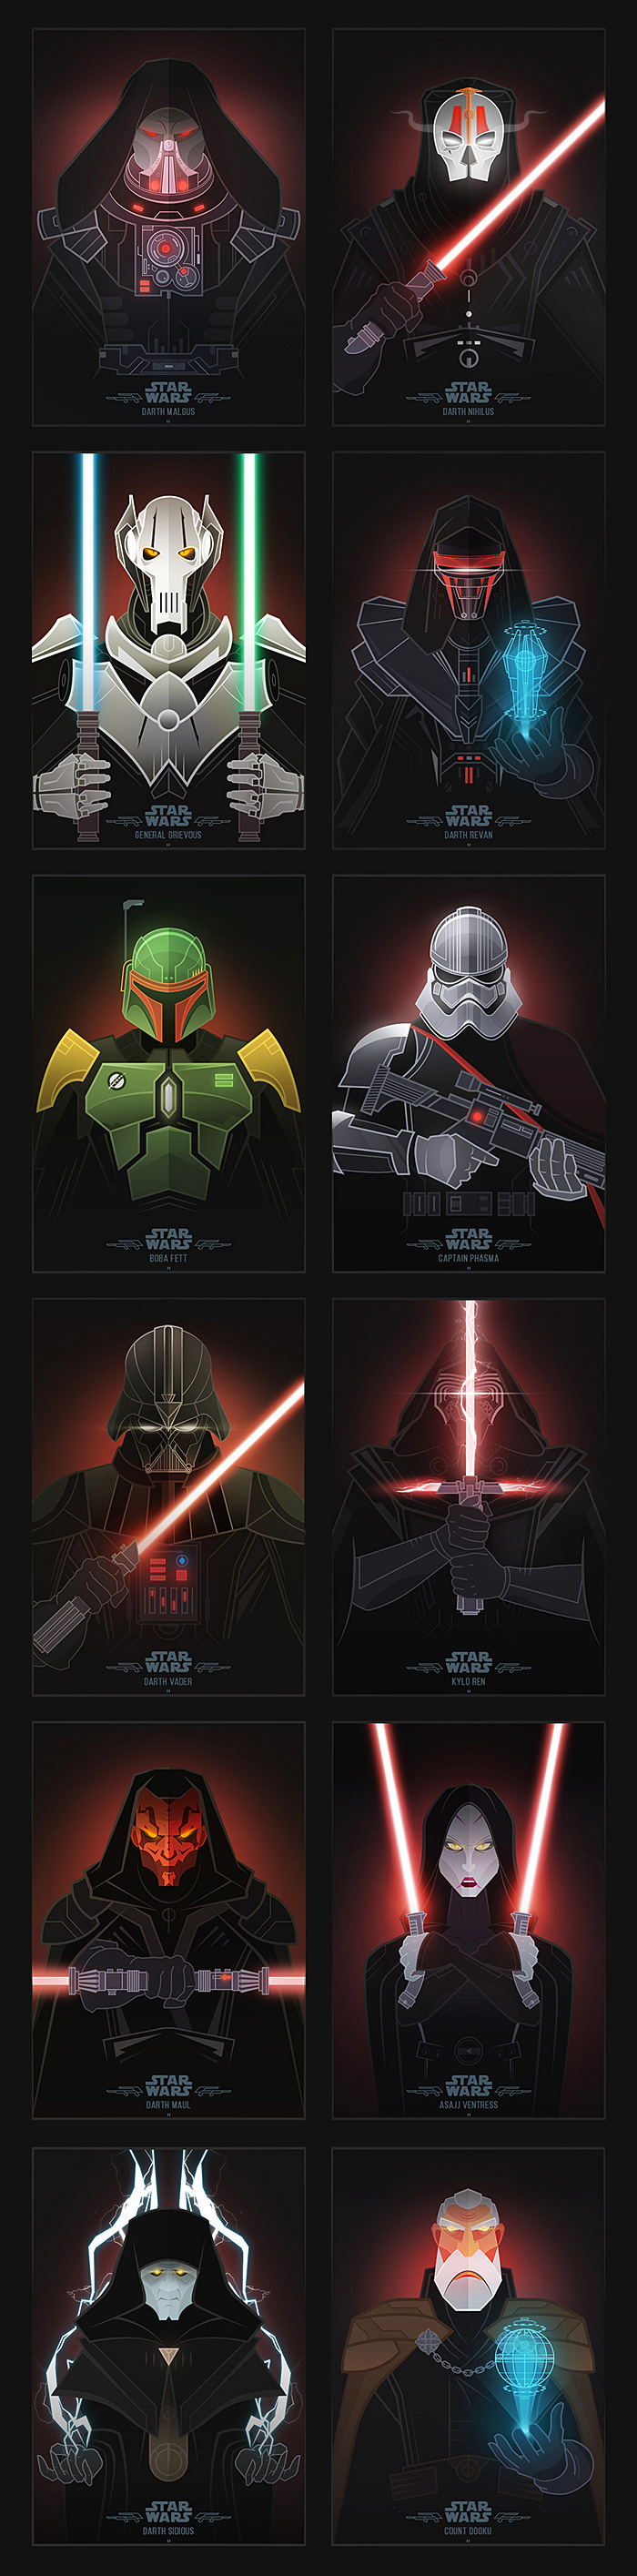 Star Wars Villains Illustrations